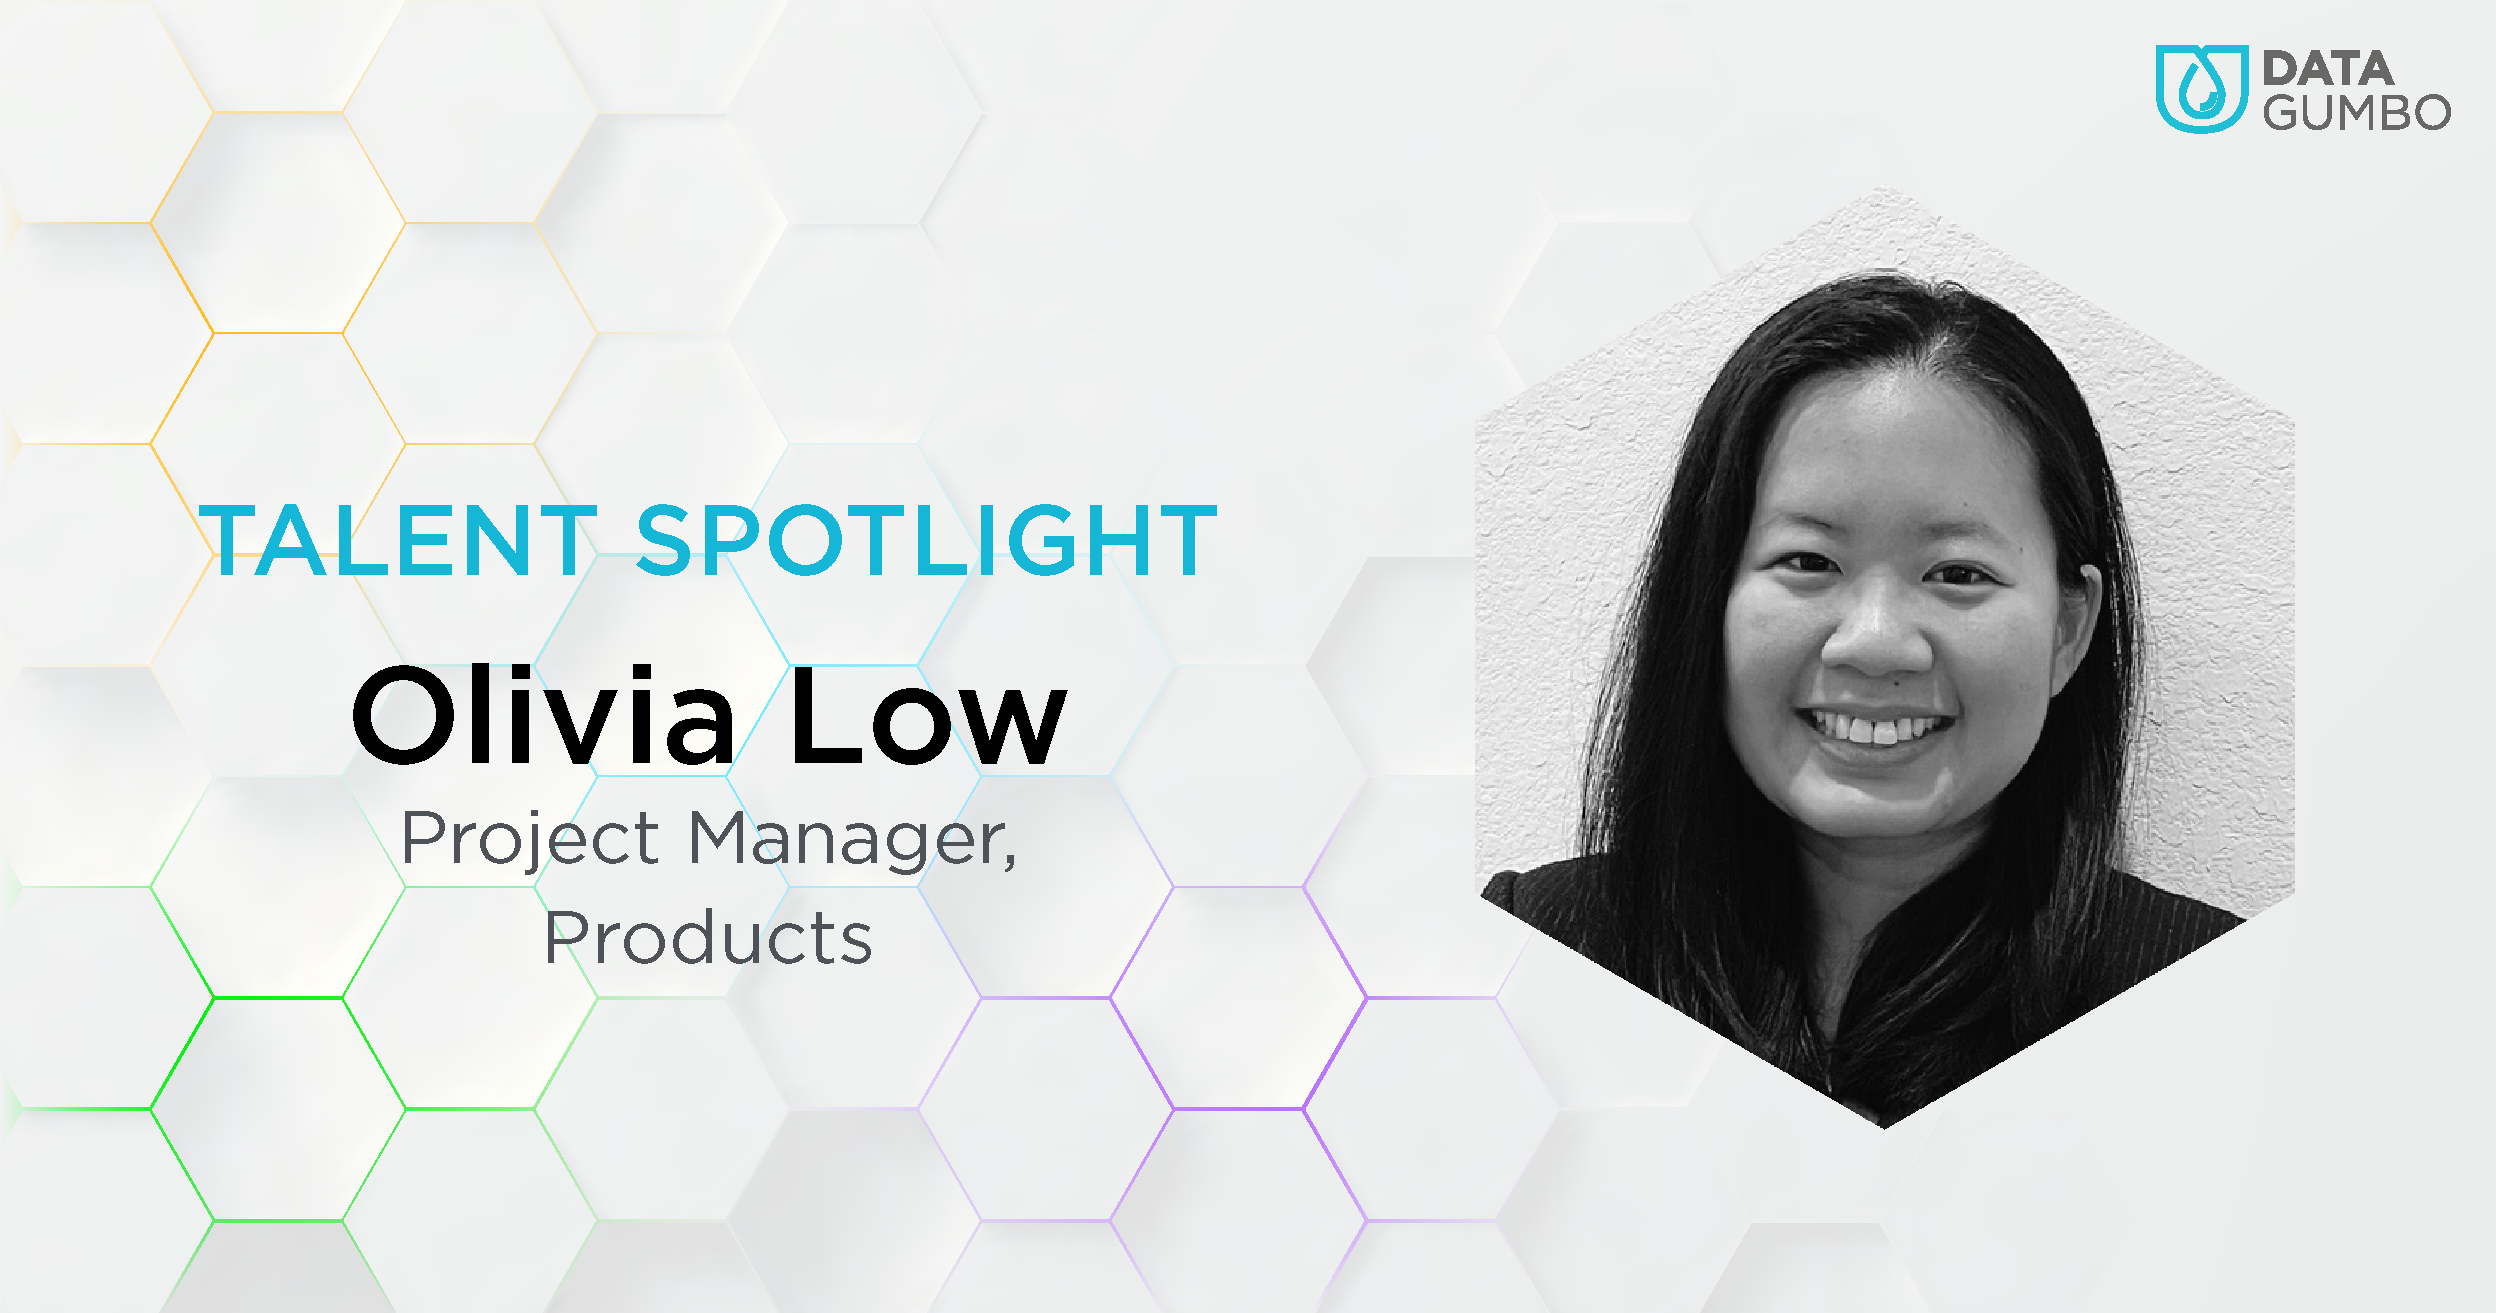 Olivia Low, Project Manager, Products